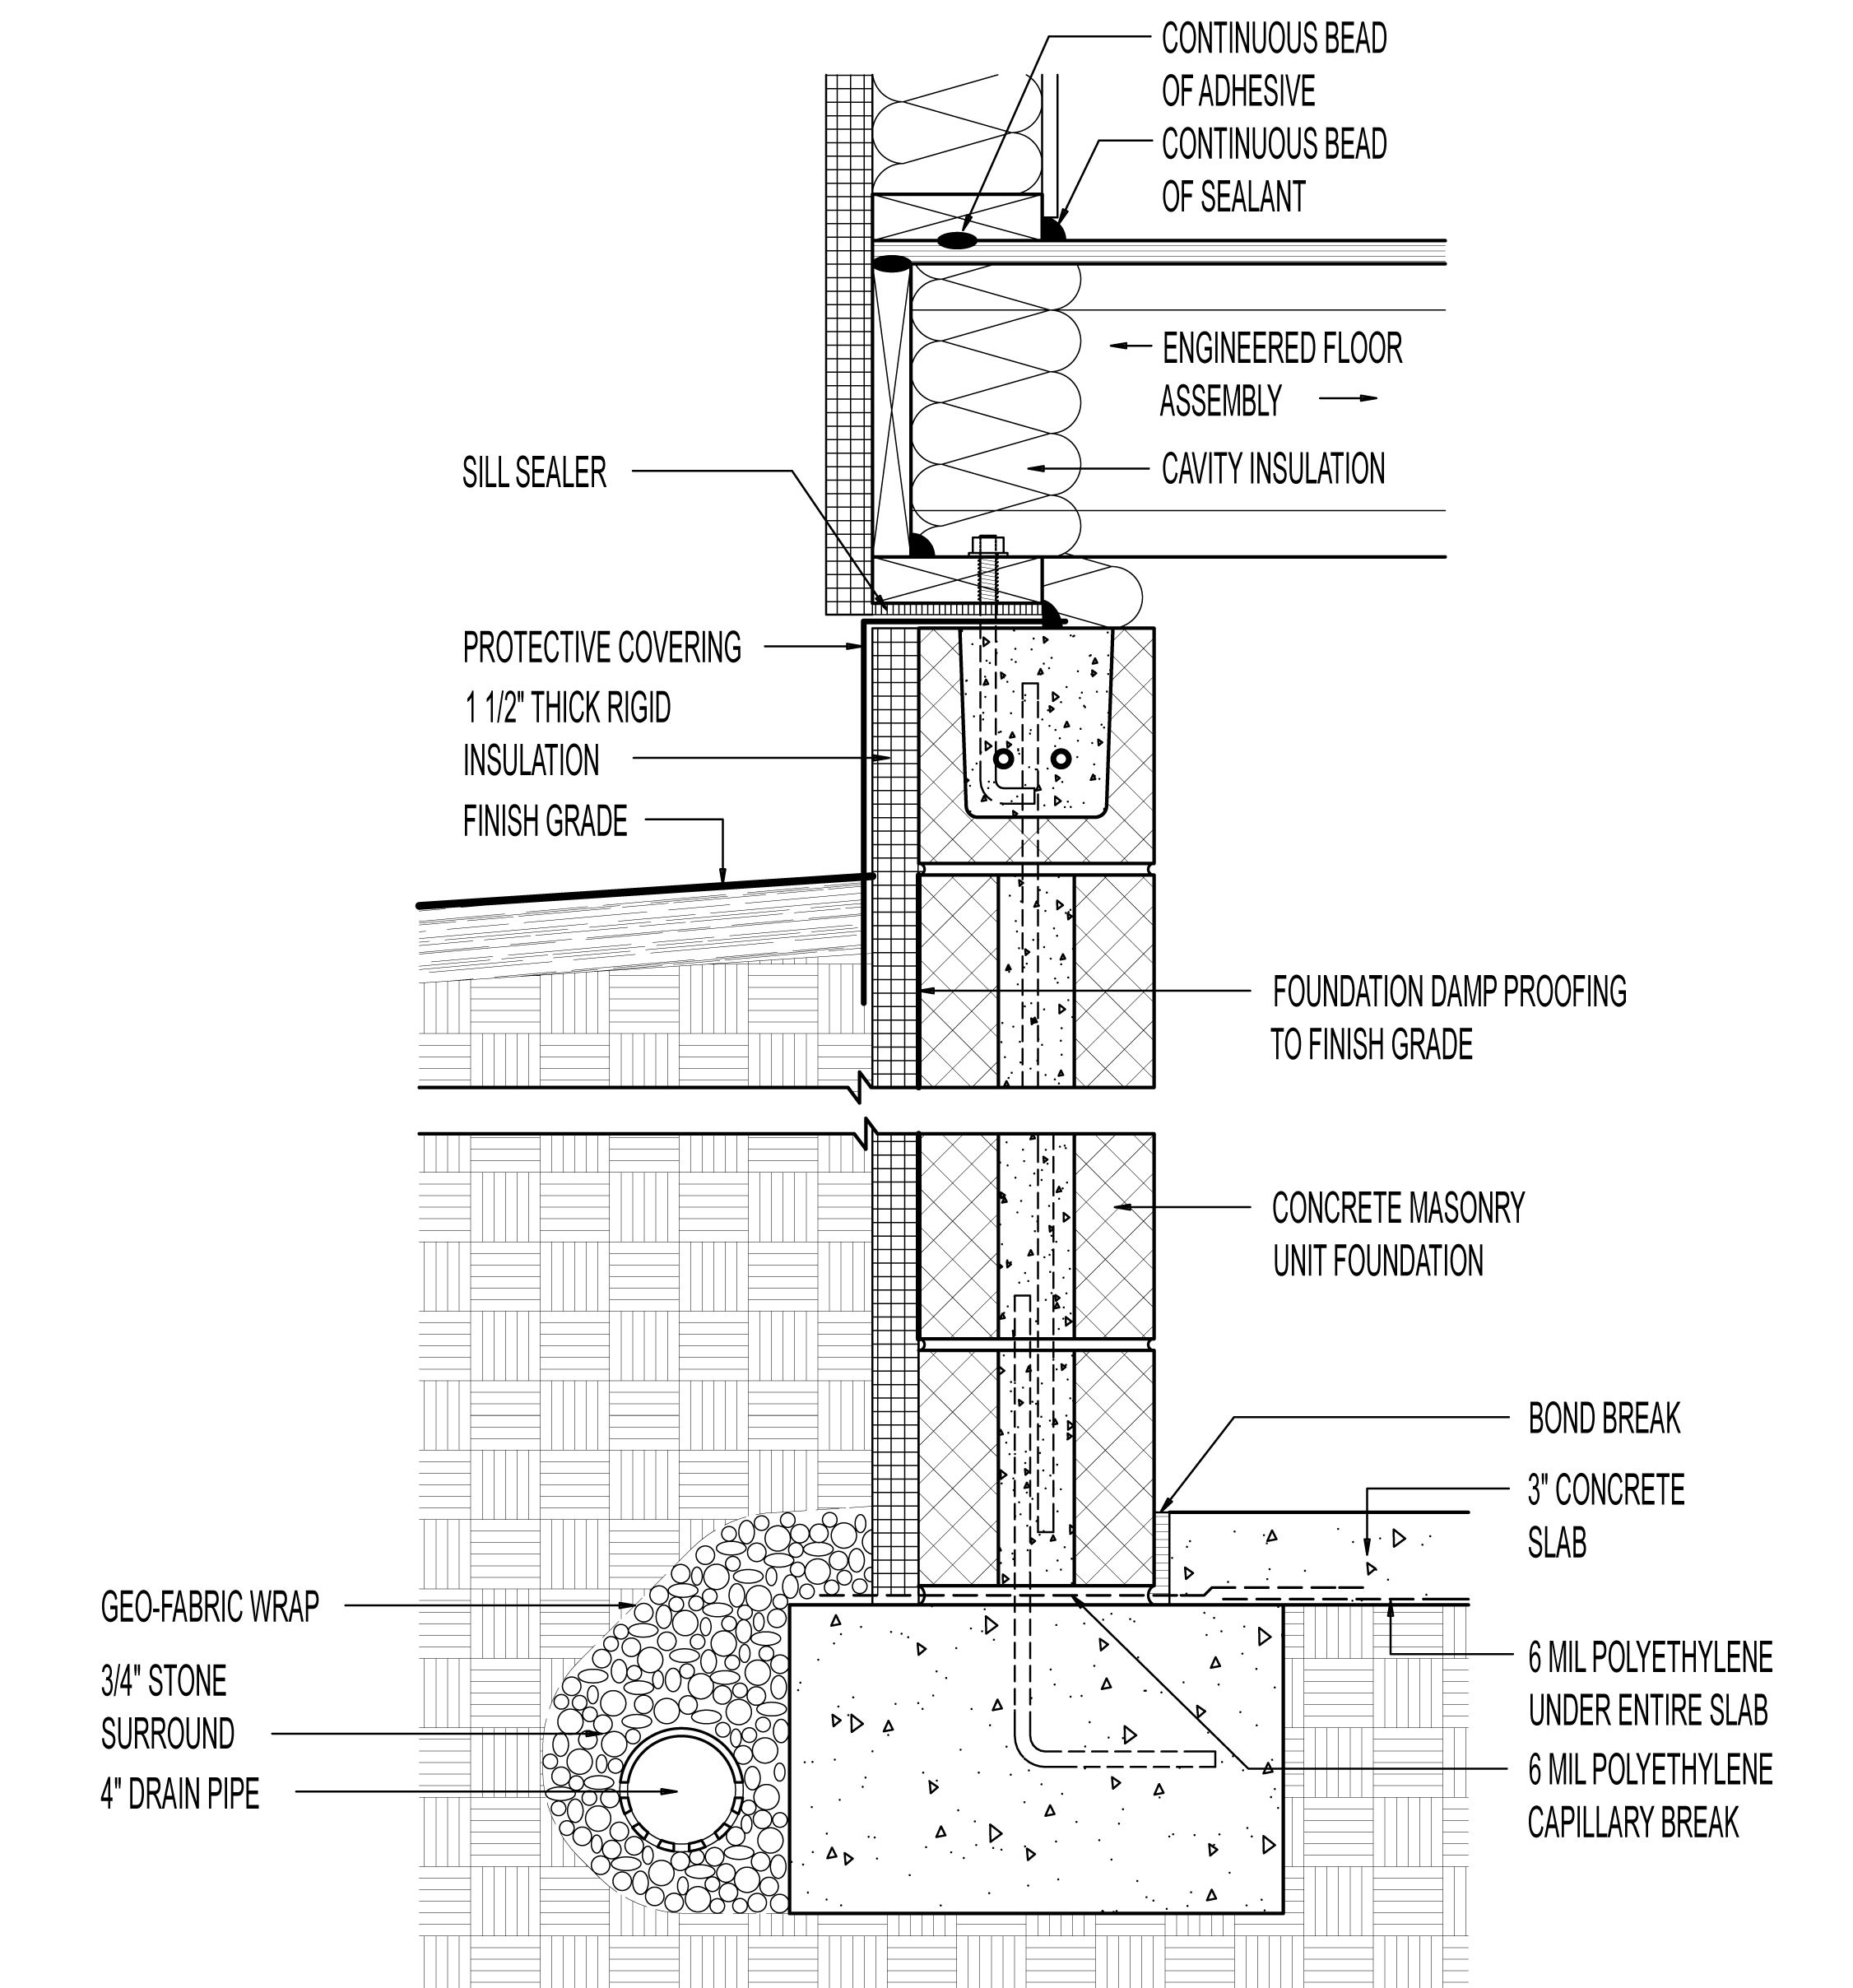 hight resolution of with the foundation wall at room temperature the footing acts as a thermal bridge that allows heat to flow from the concrete block wall to the soil